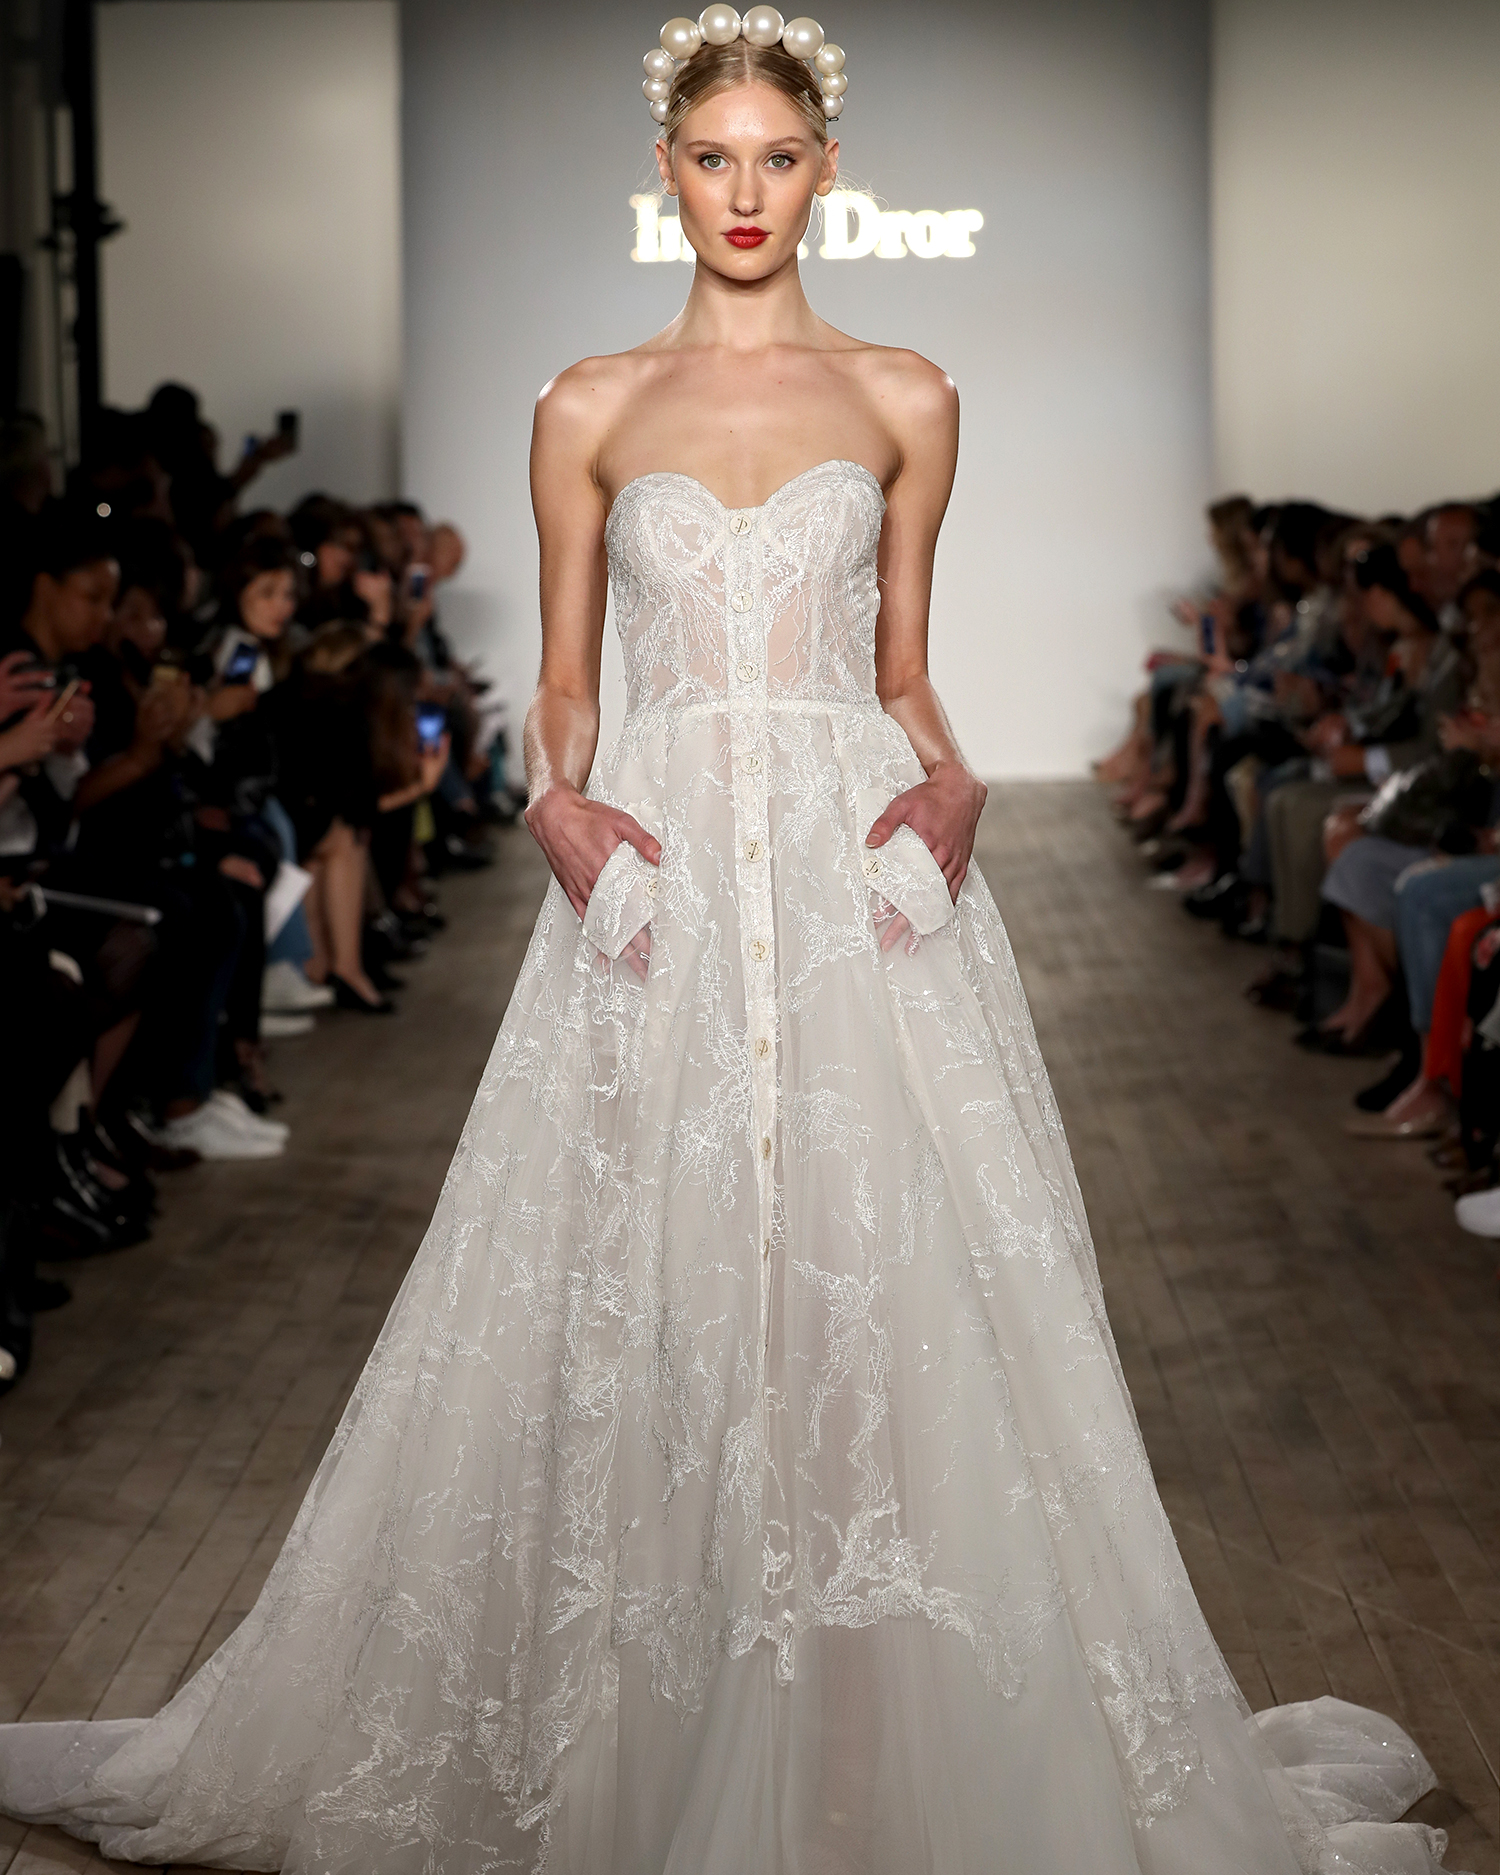 inbal dror wedding dress sweetheart a-line with button details